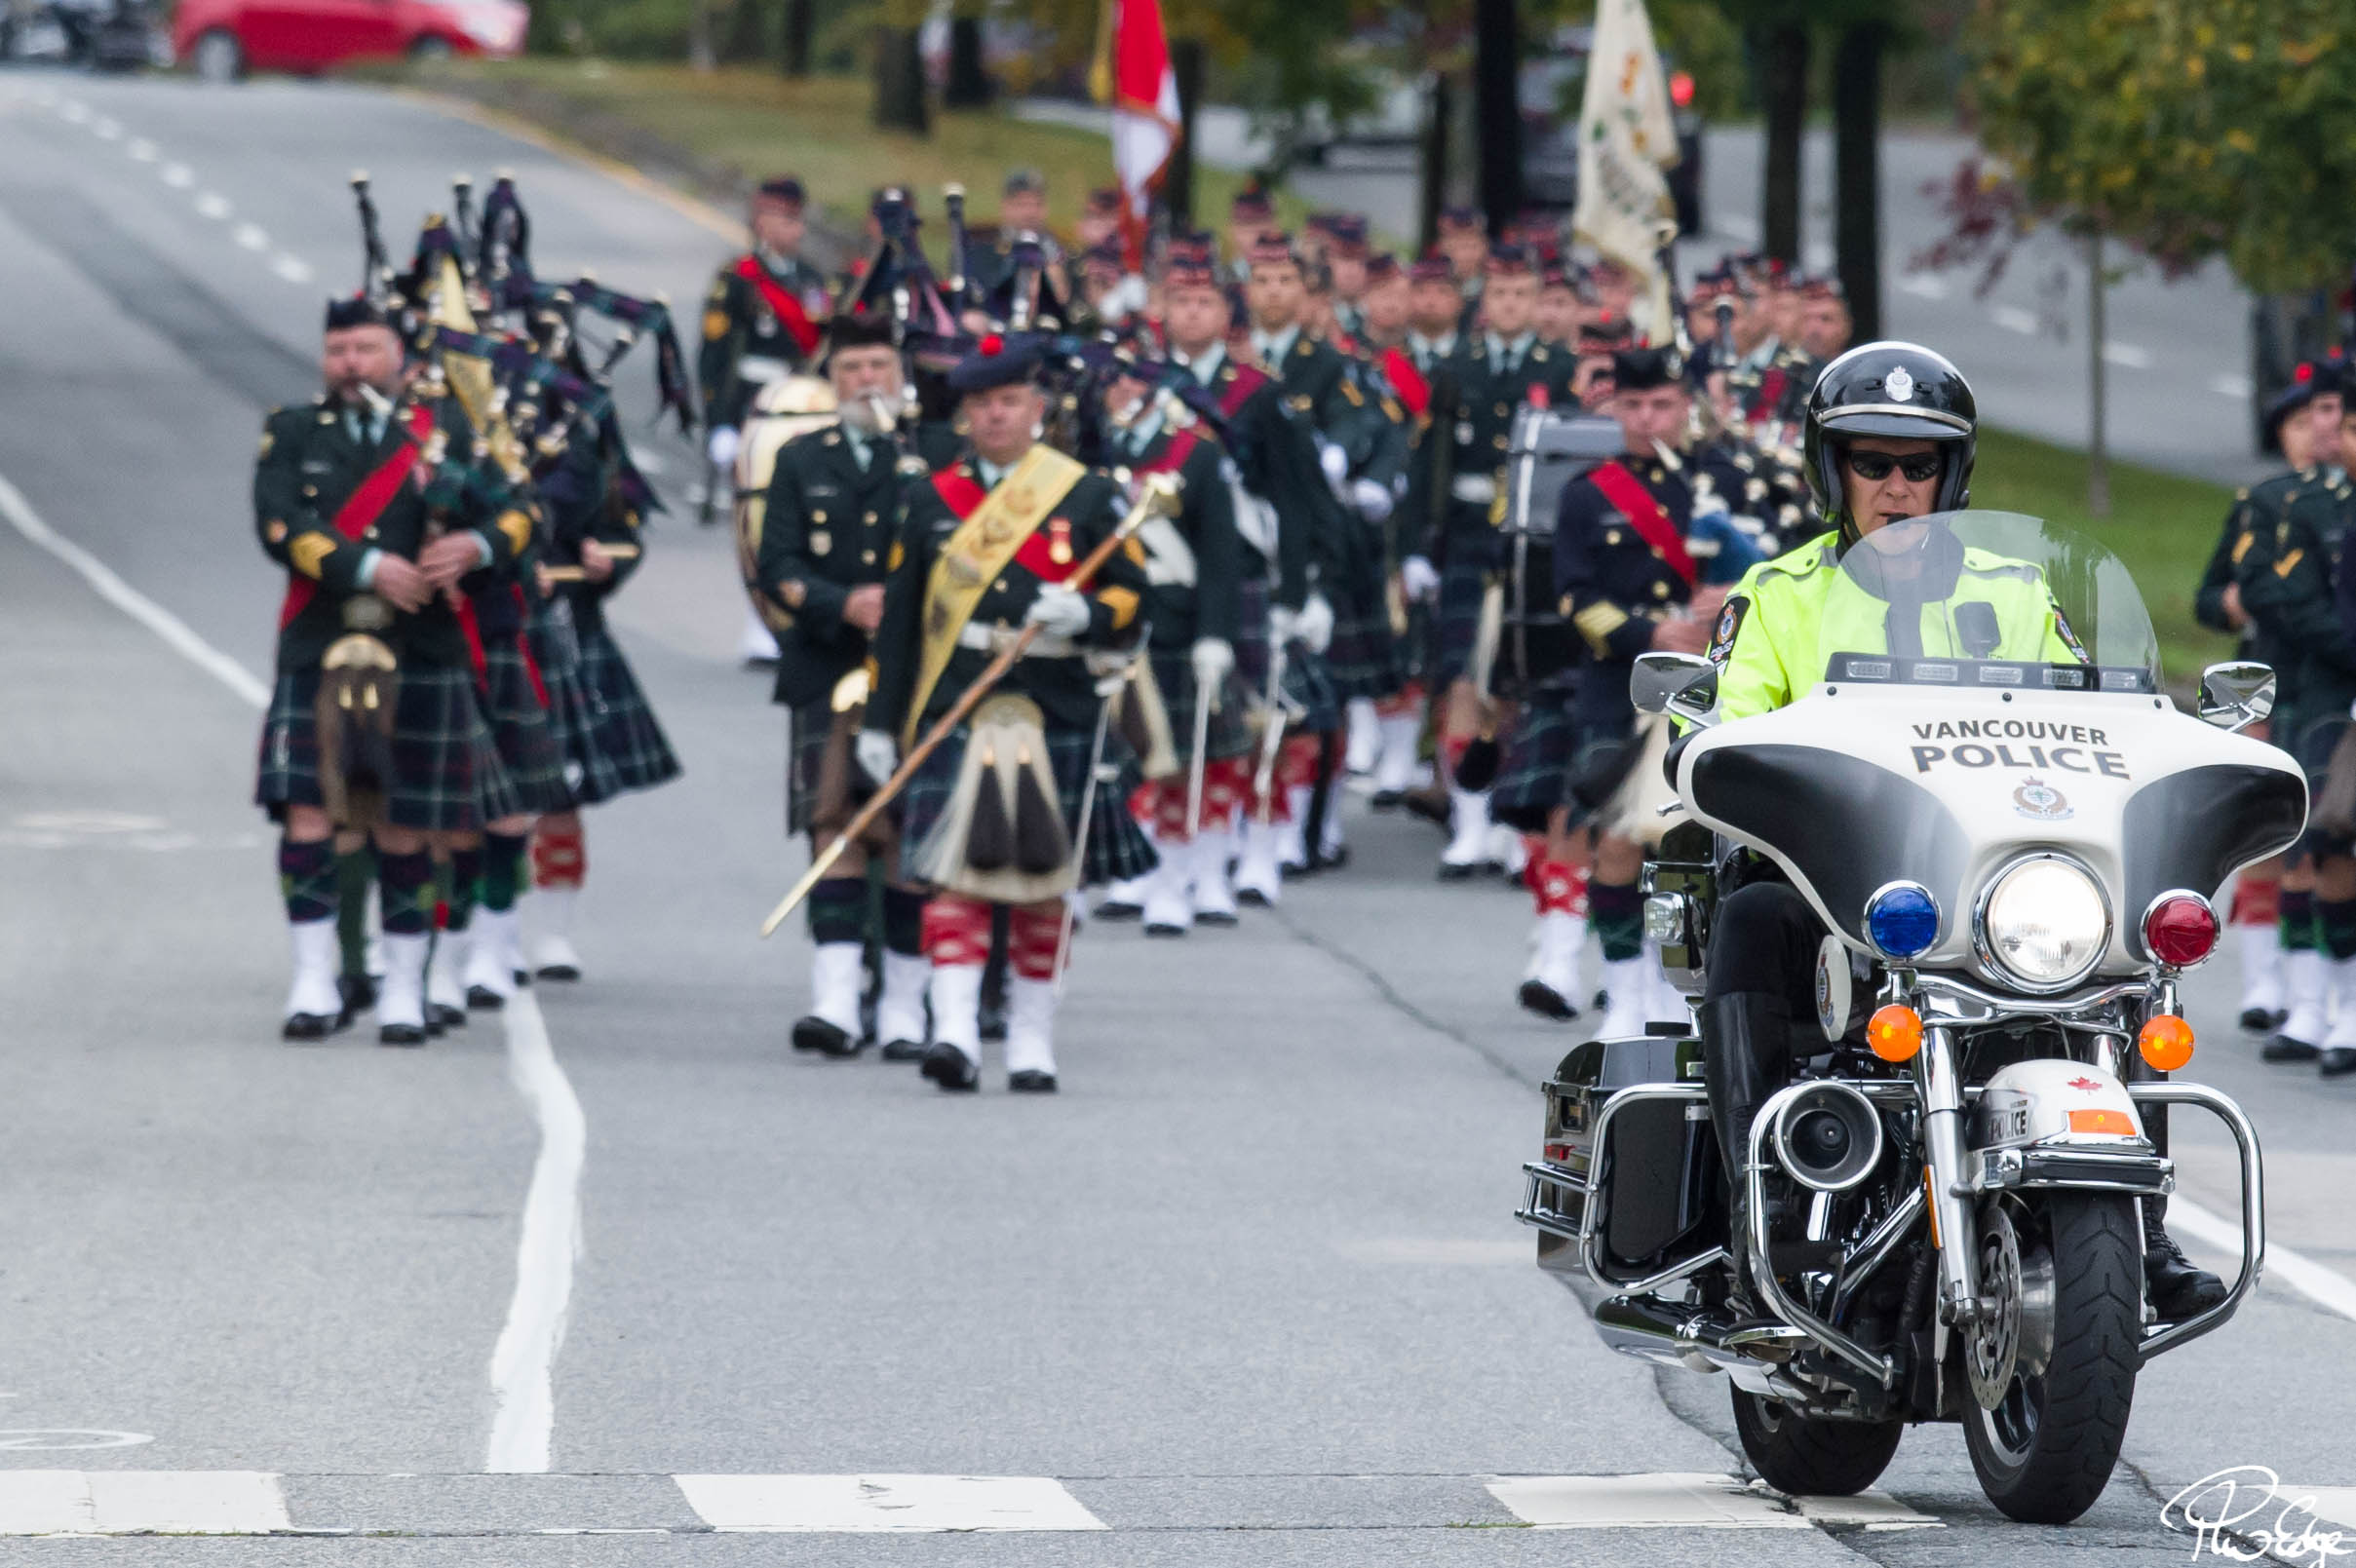 Seaforth Highlanders of Canada Homecoming 24 Sept 16 No-7.jpg